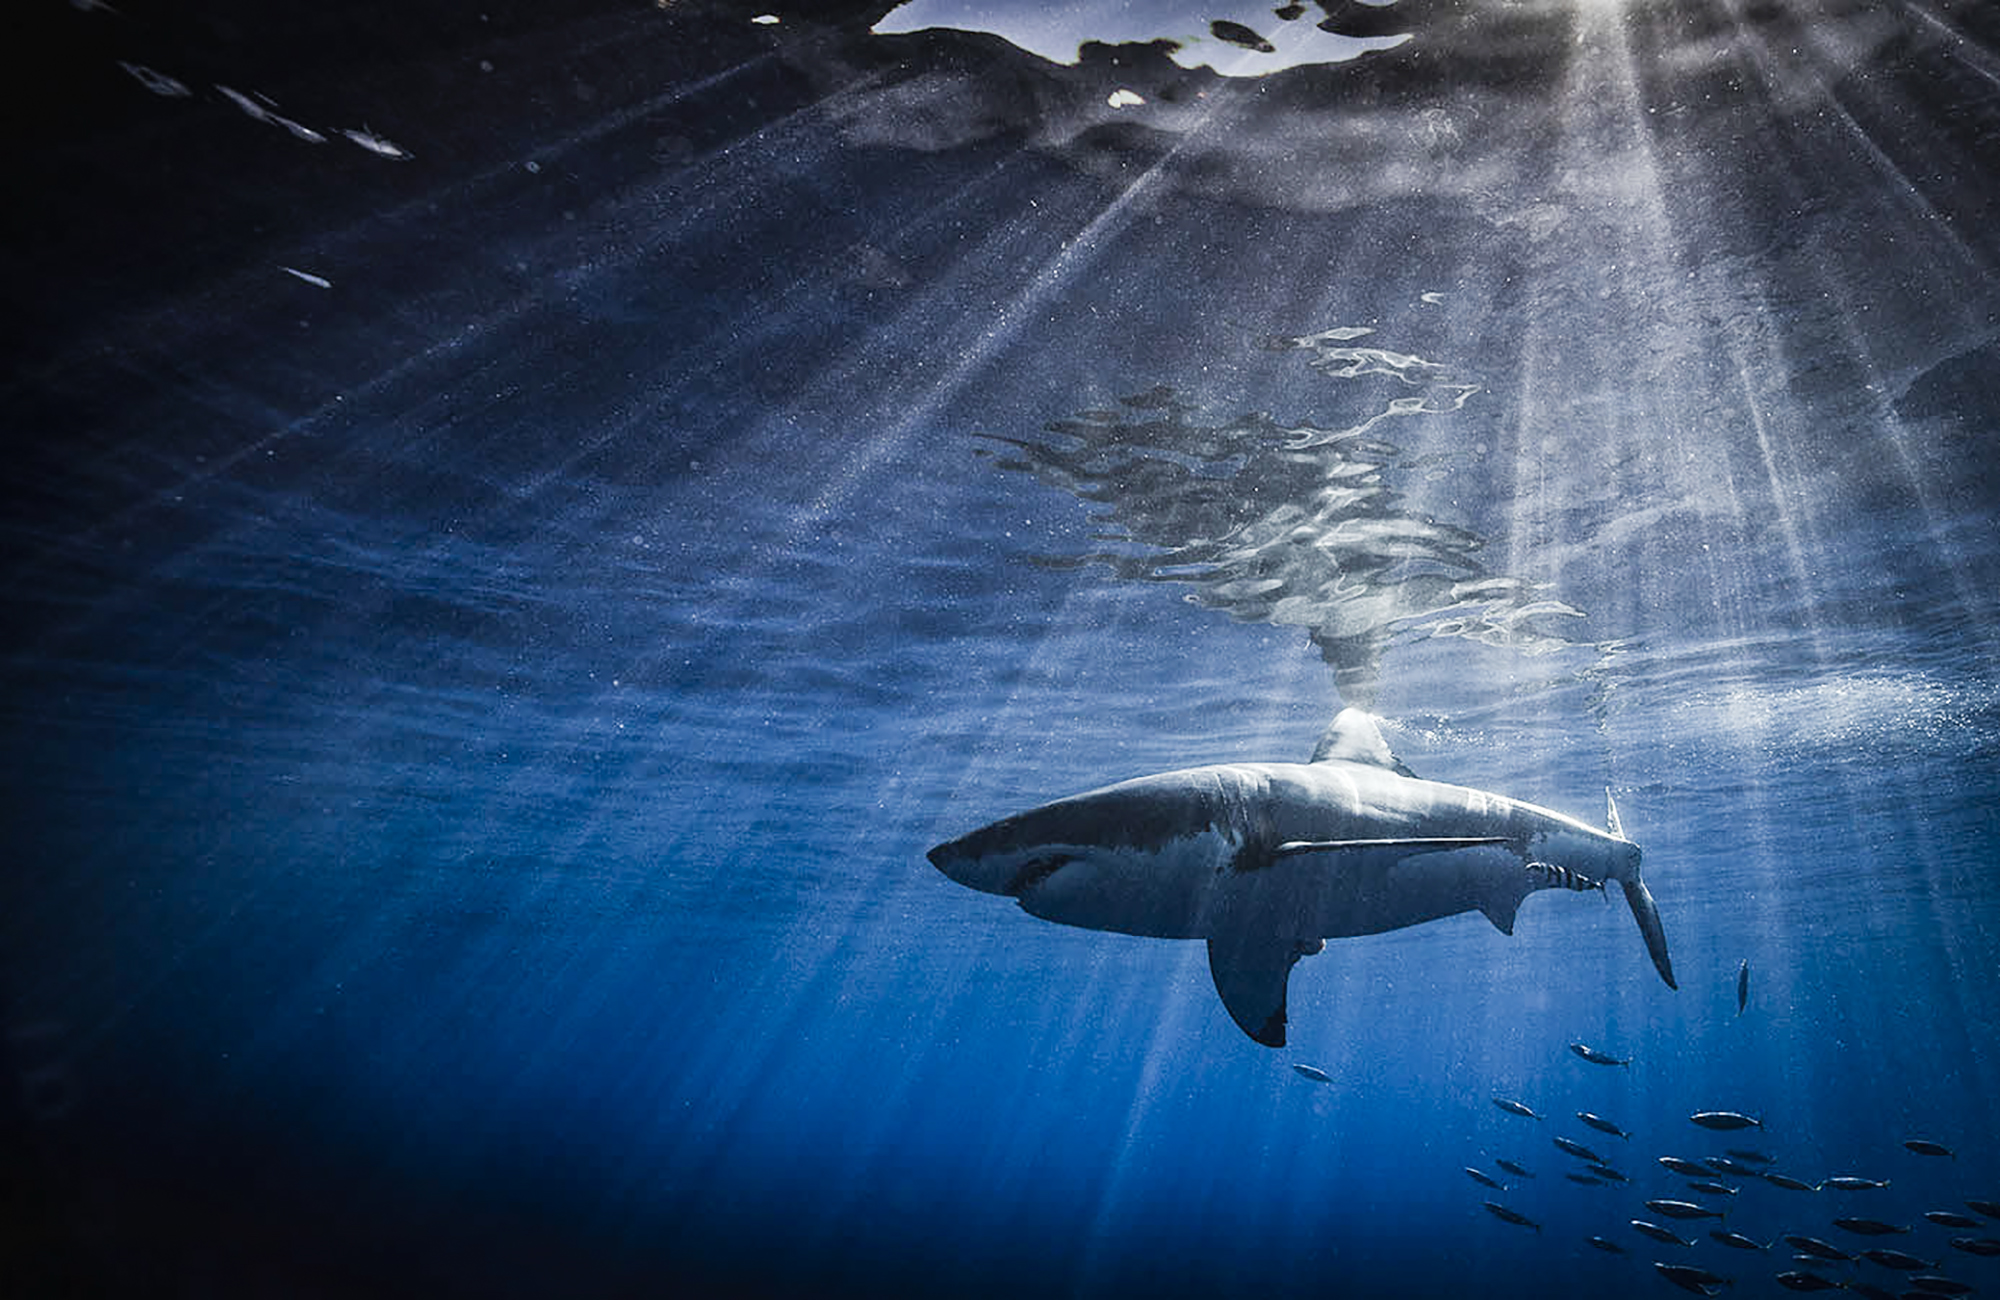 Shark in a sunbeam, Photo by Scott Davis